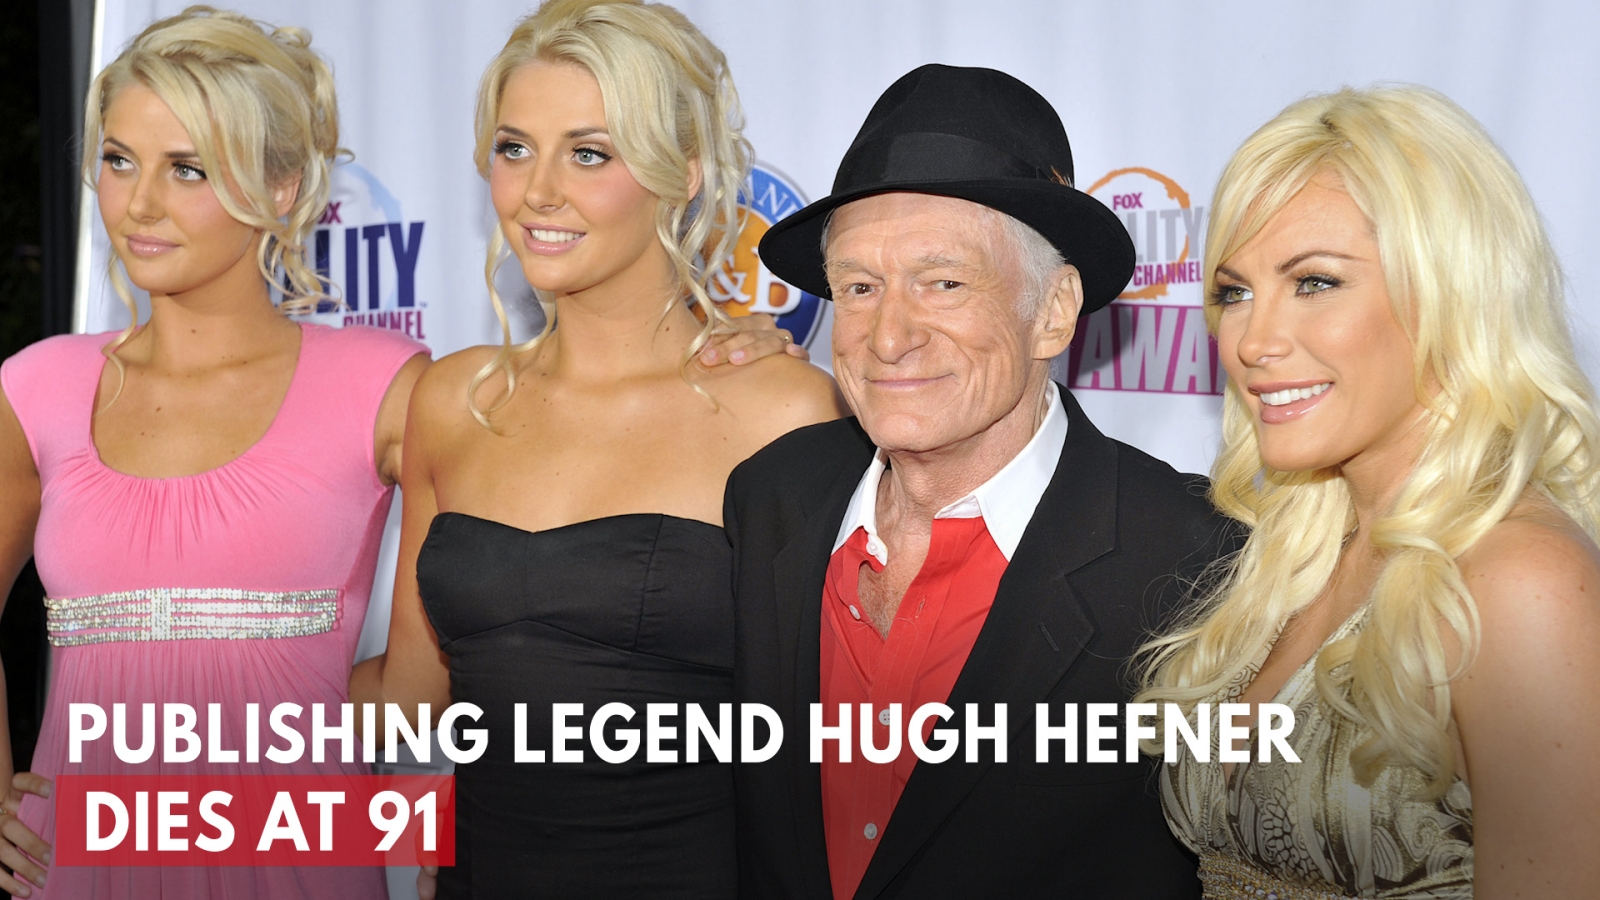 playboy-magazine-founder-hugh-hefner-dies